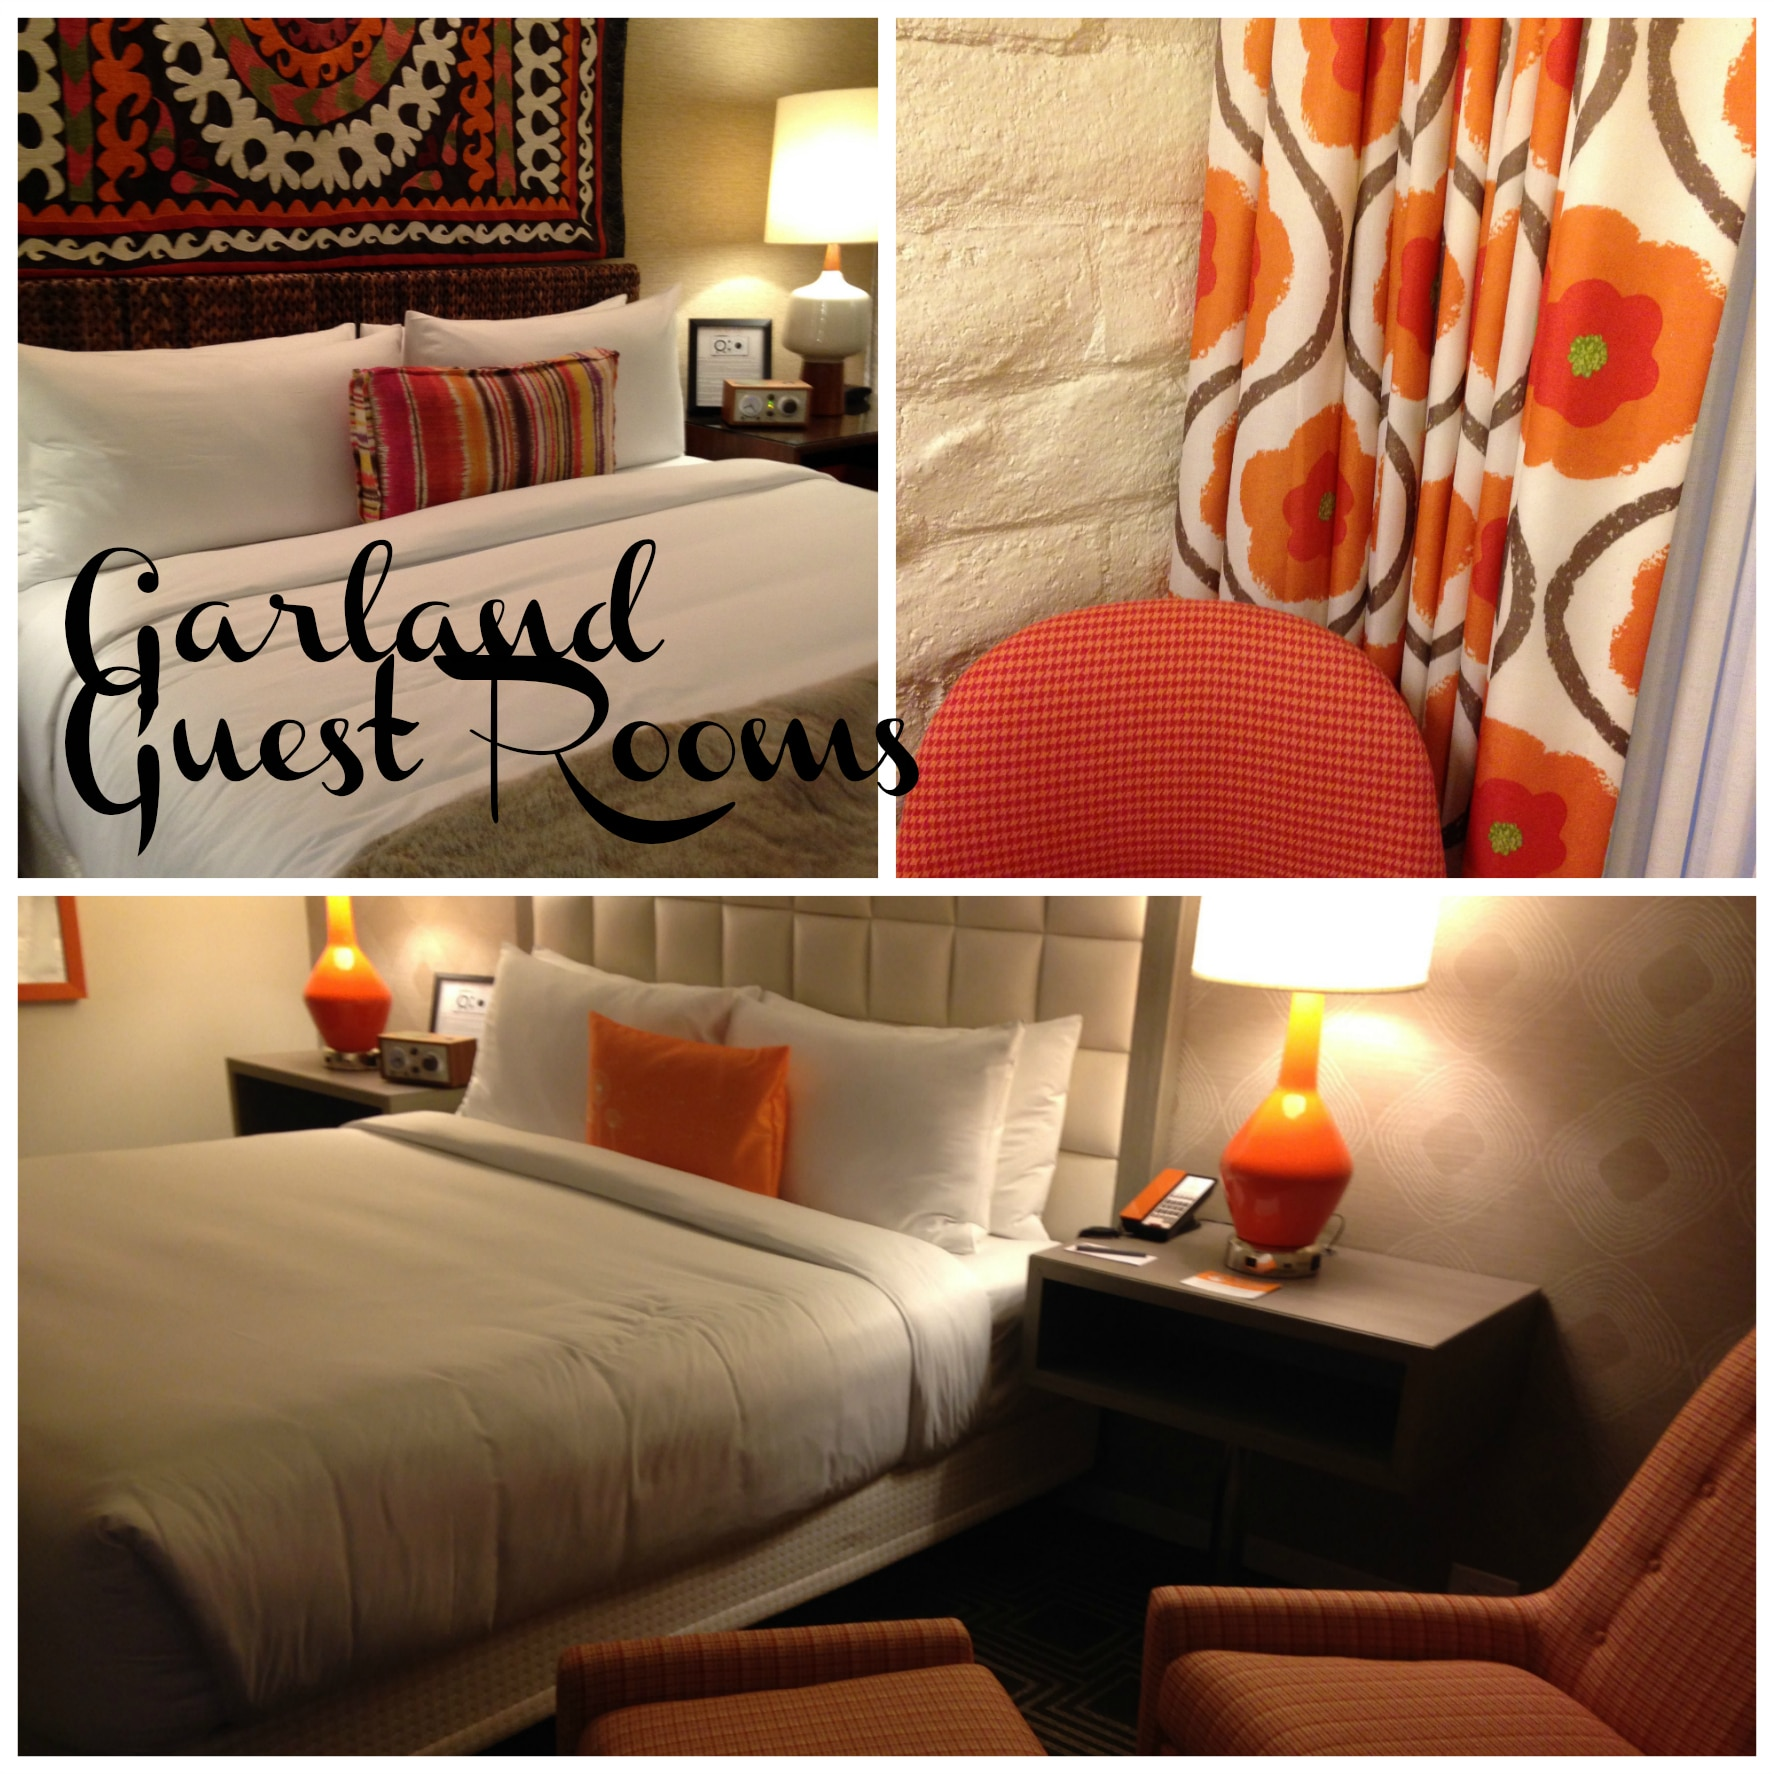 Garland Hotel Guest Rooms north hollywood